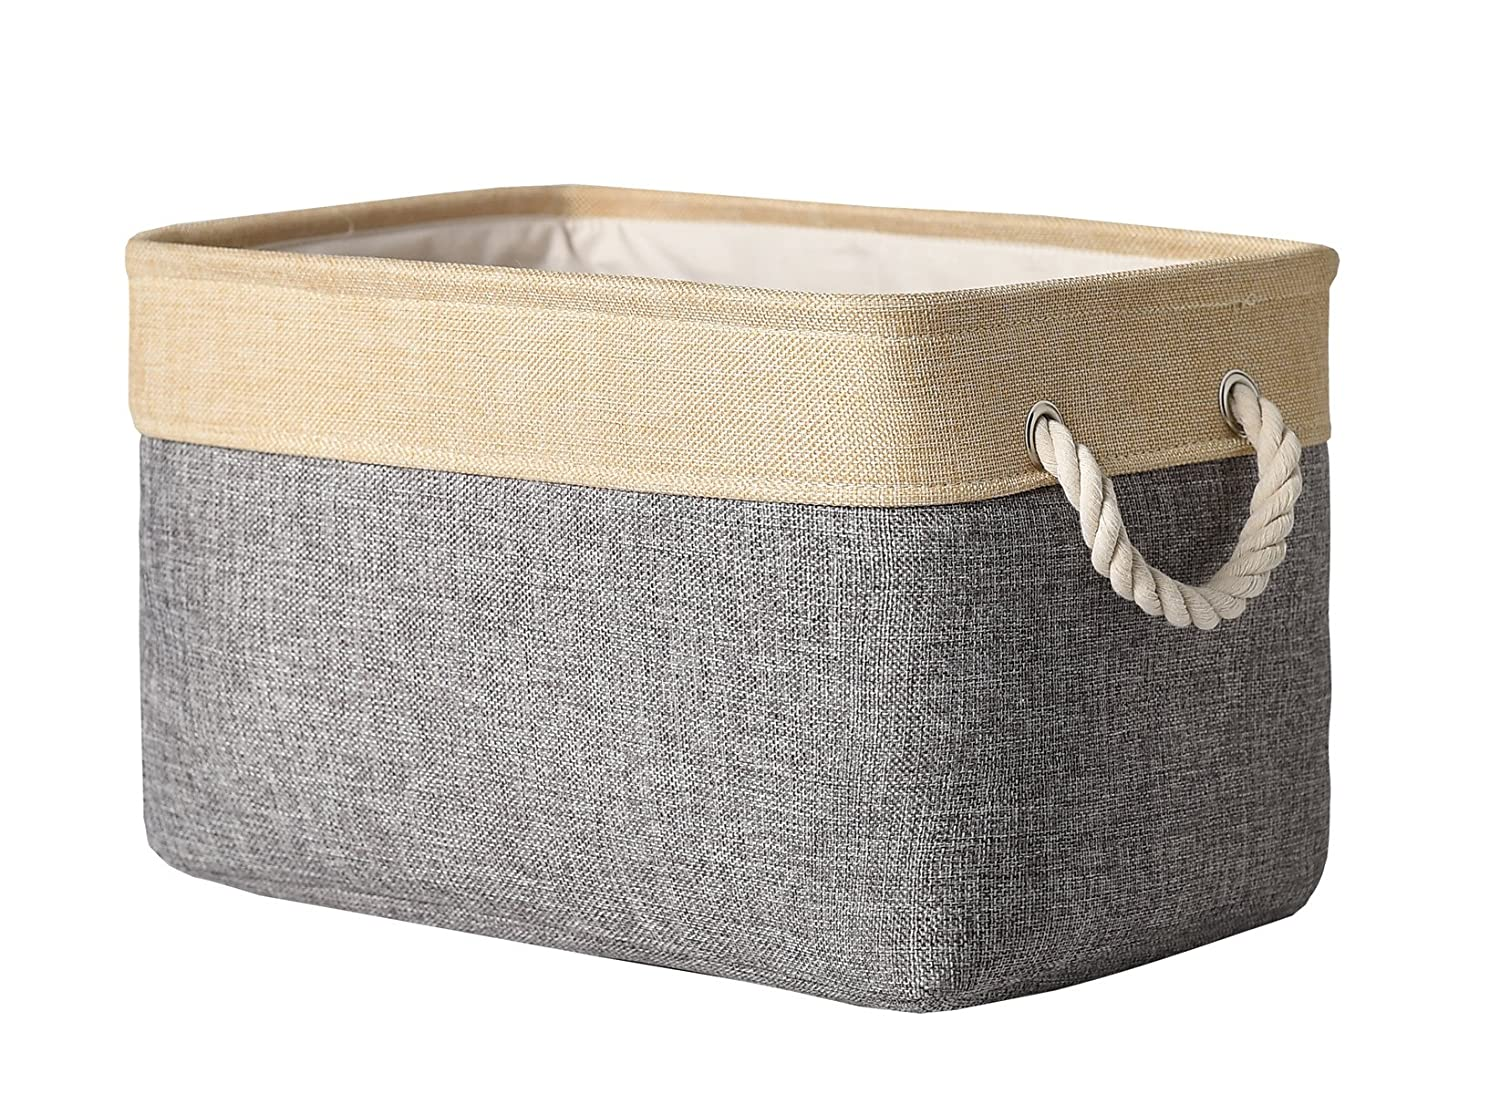 Amazon.com: TheWarmHome Decorative Basket Rectangular Fabric Storage Bin  Organizer Basket With Handles For Clothes Storage (Grey Patchwork,  15.7L11.8W8.3H): ...